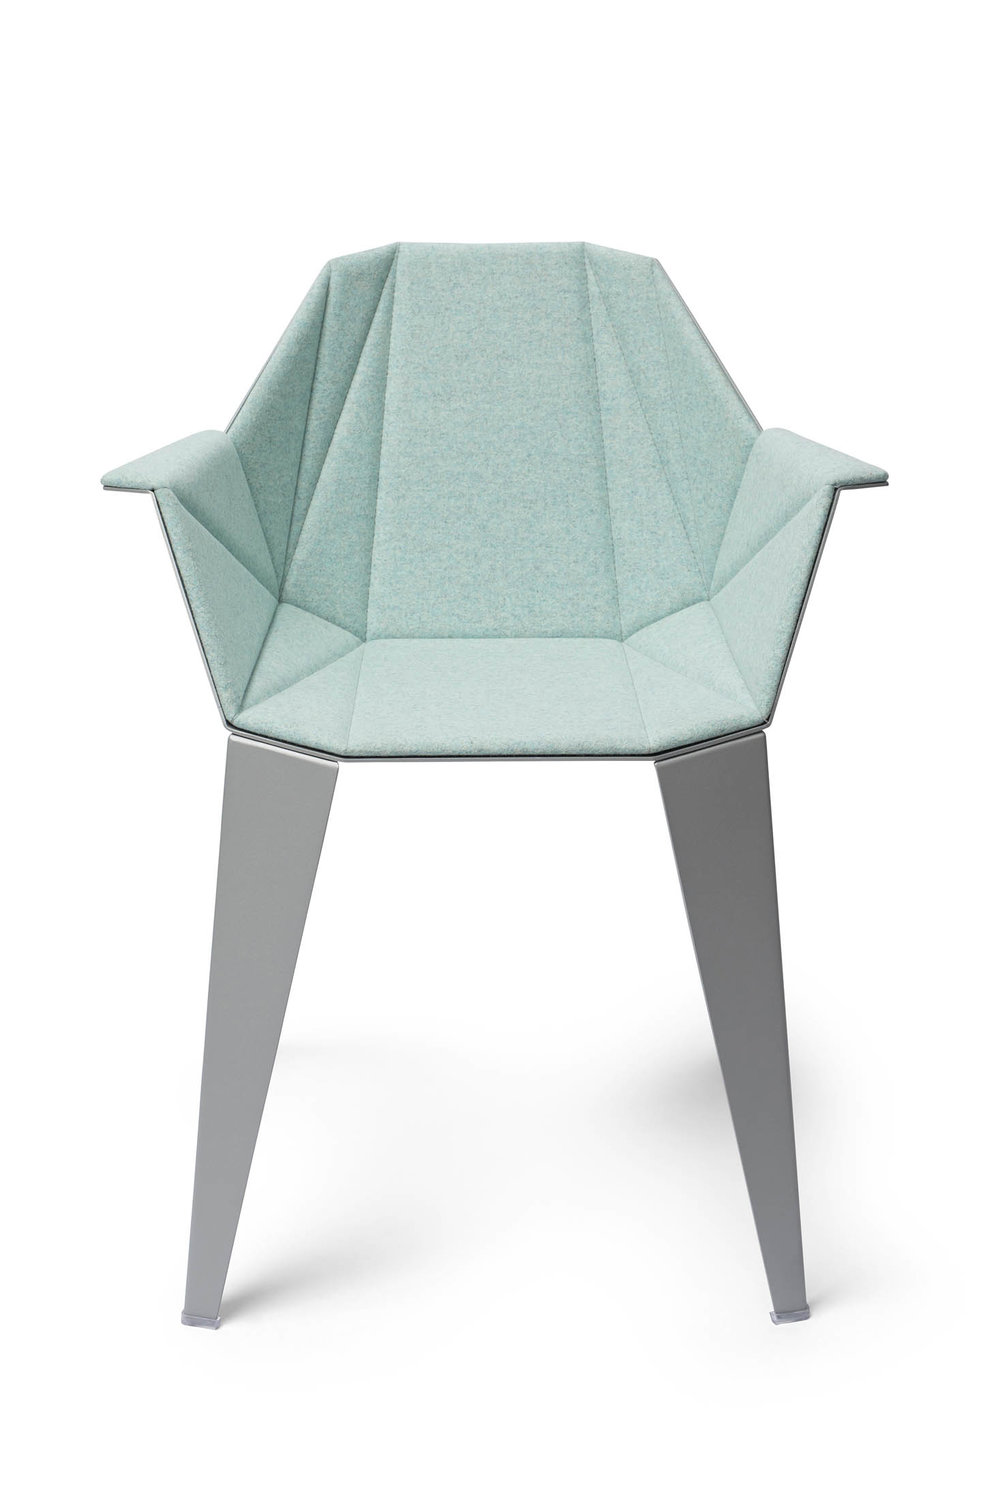 alumni-alpha-aluminum light-blue-upholstered-front.jpg